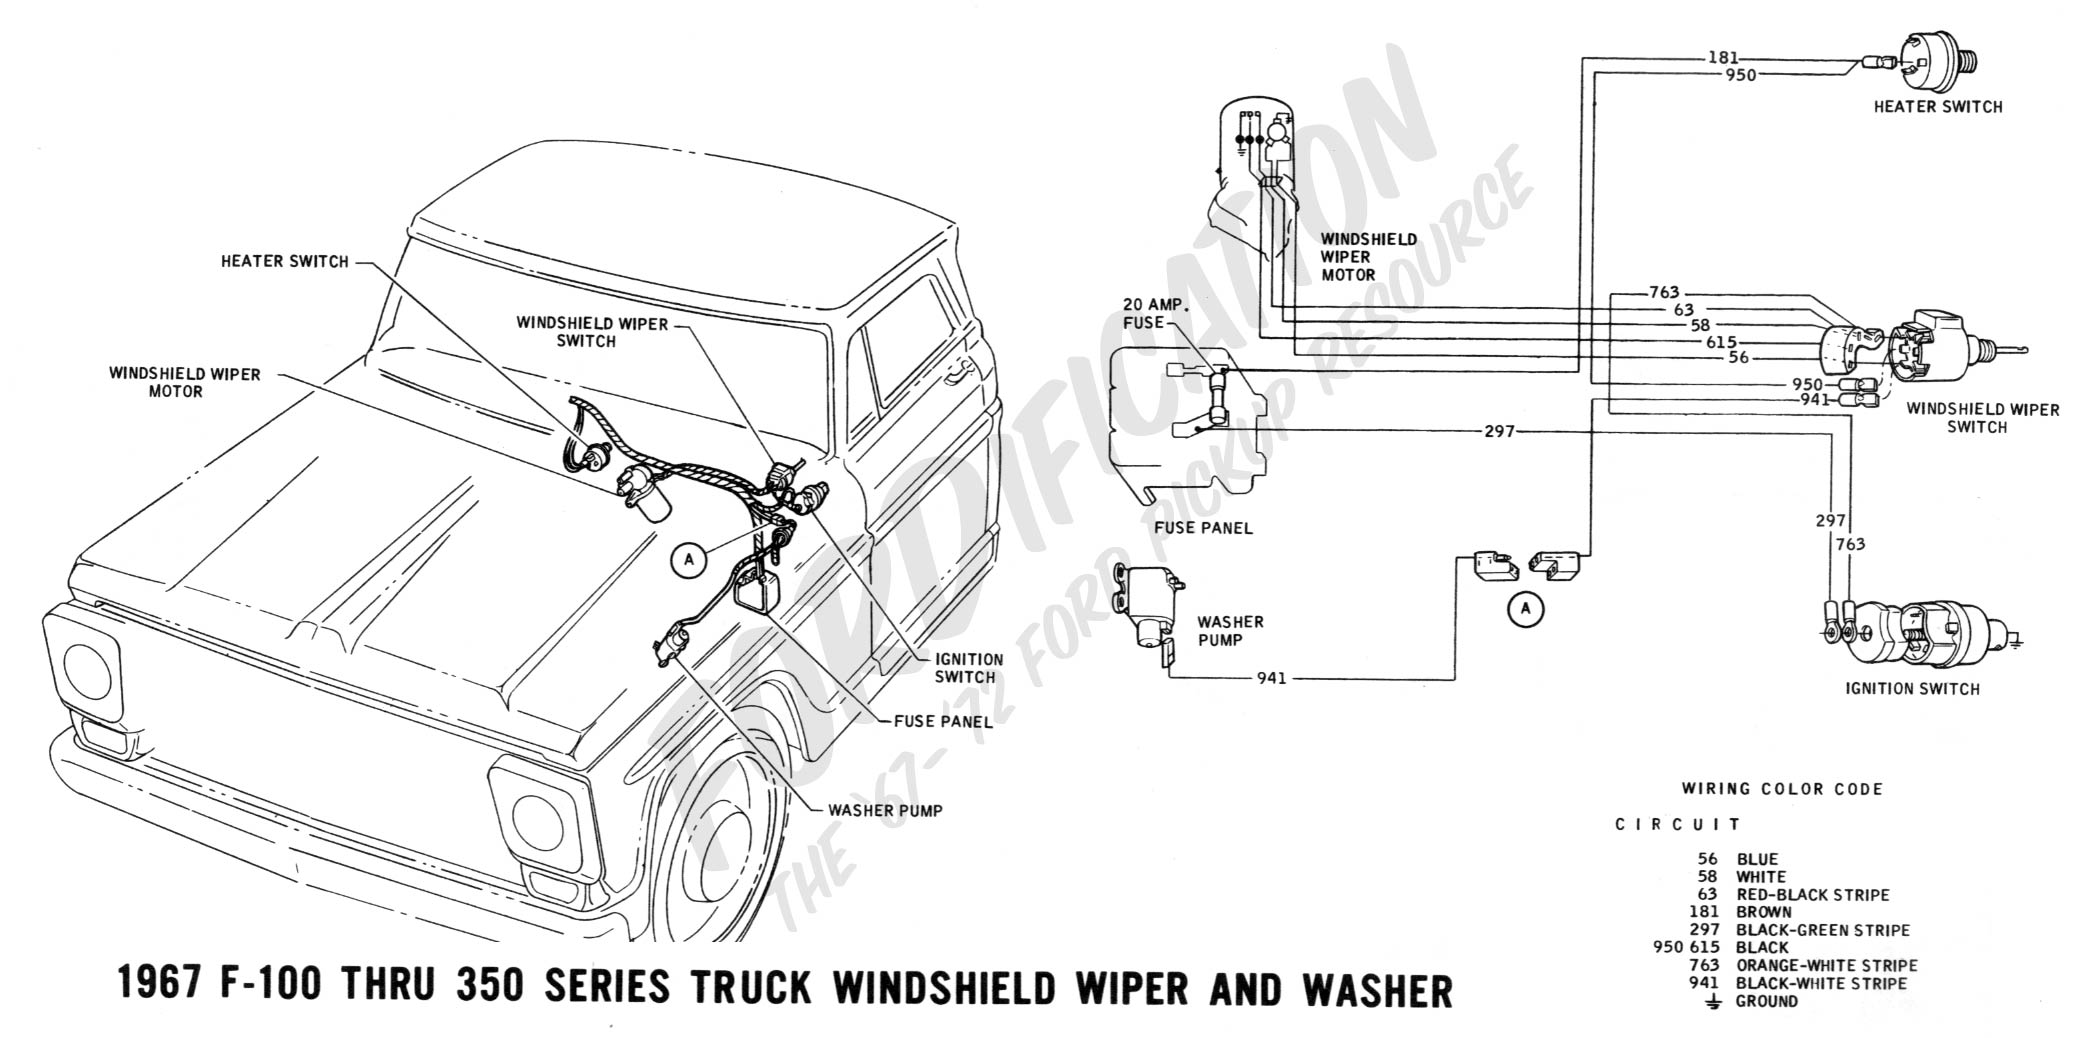 1967 Camaro Wiper Motor Wiring Quick Start Guide Of Diagram Distributor Ford Truck Technical Drawings And Schematics Section H Diagrams Switch